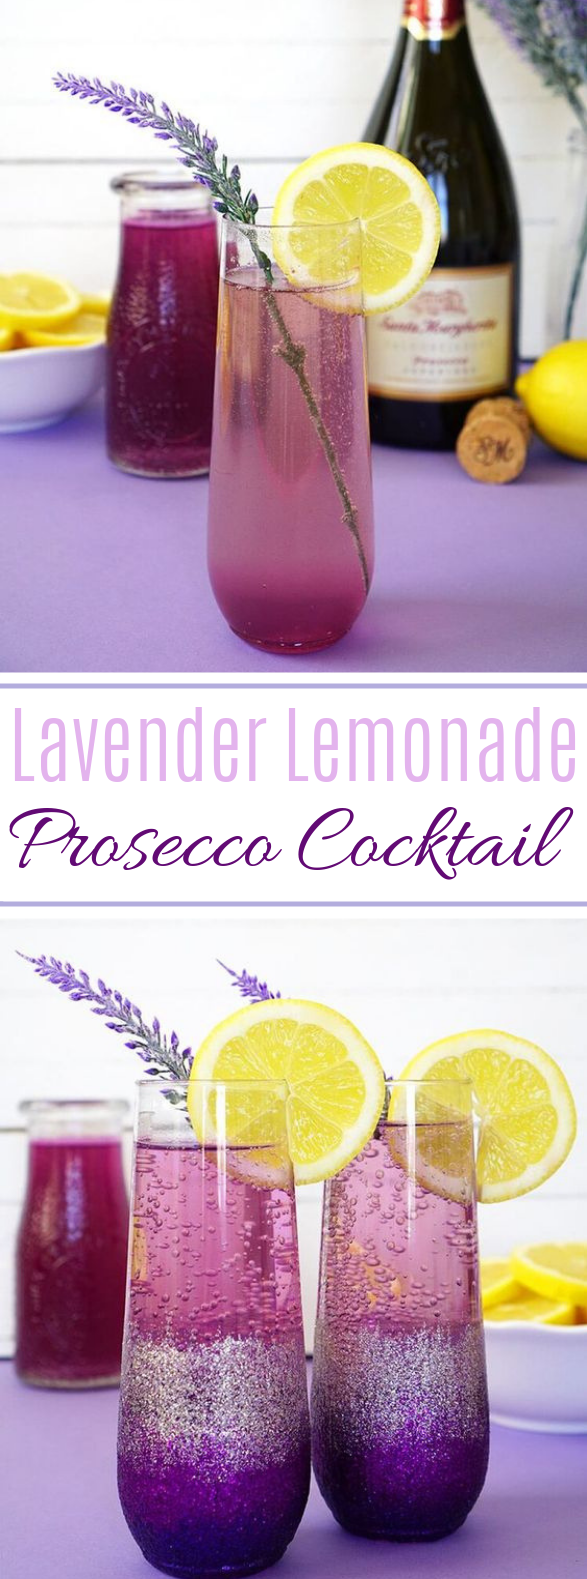 Lavender Lemonade Prosecco Cocktails #drinks #party